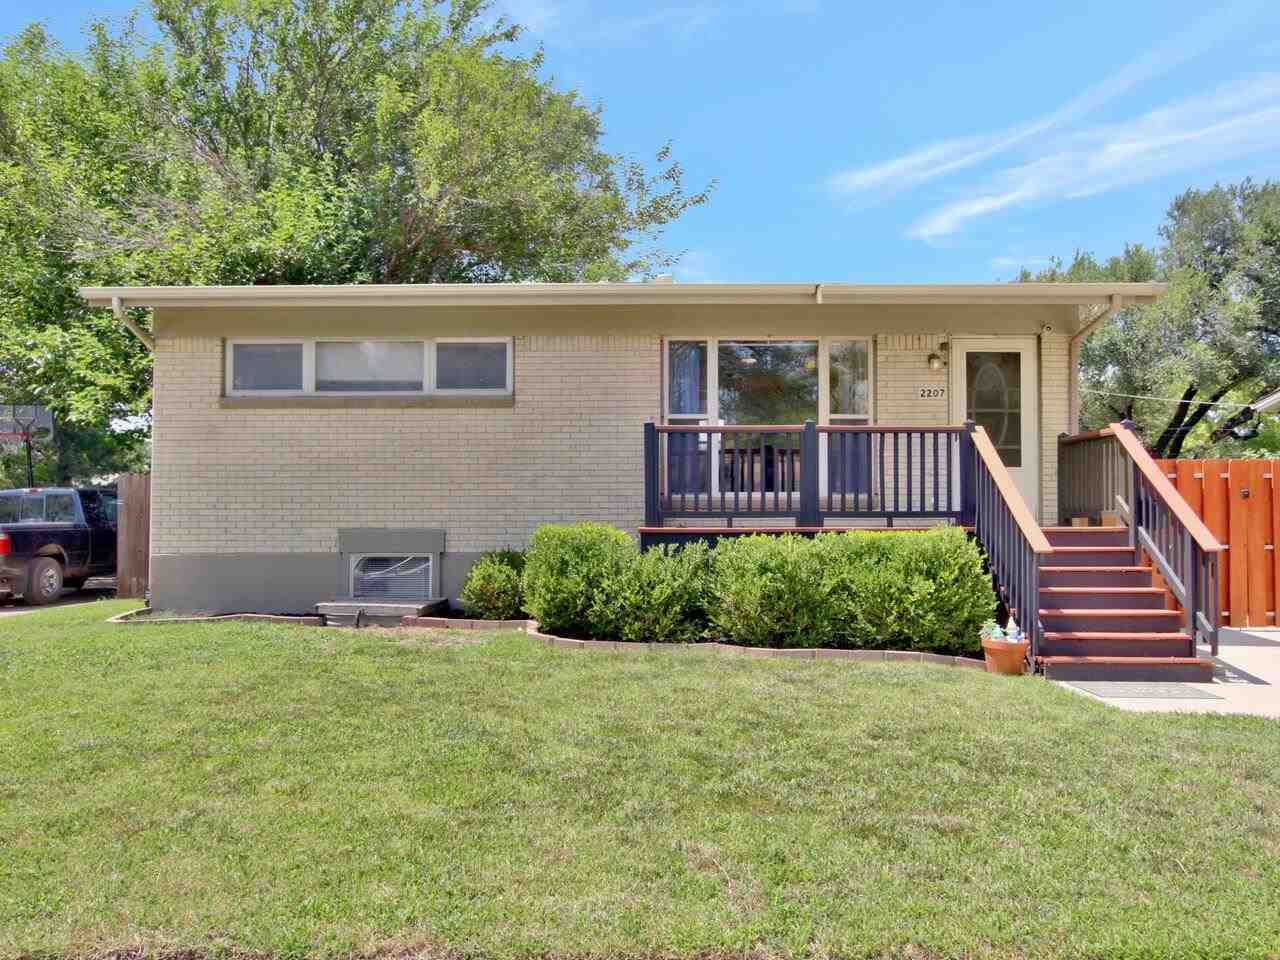 This one is neat, clean, and ready for a new family!  4 bedroom 2 bath with large yard is all freshl